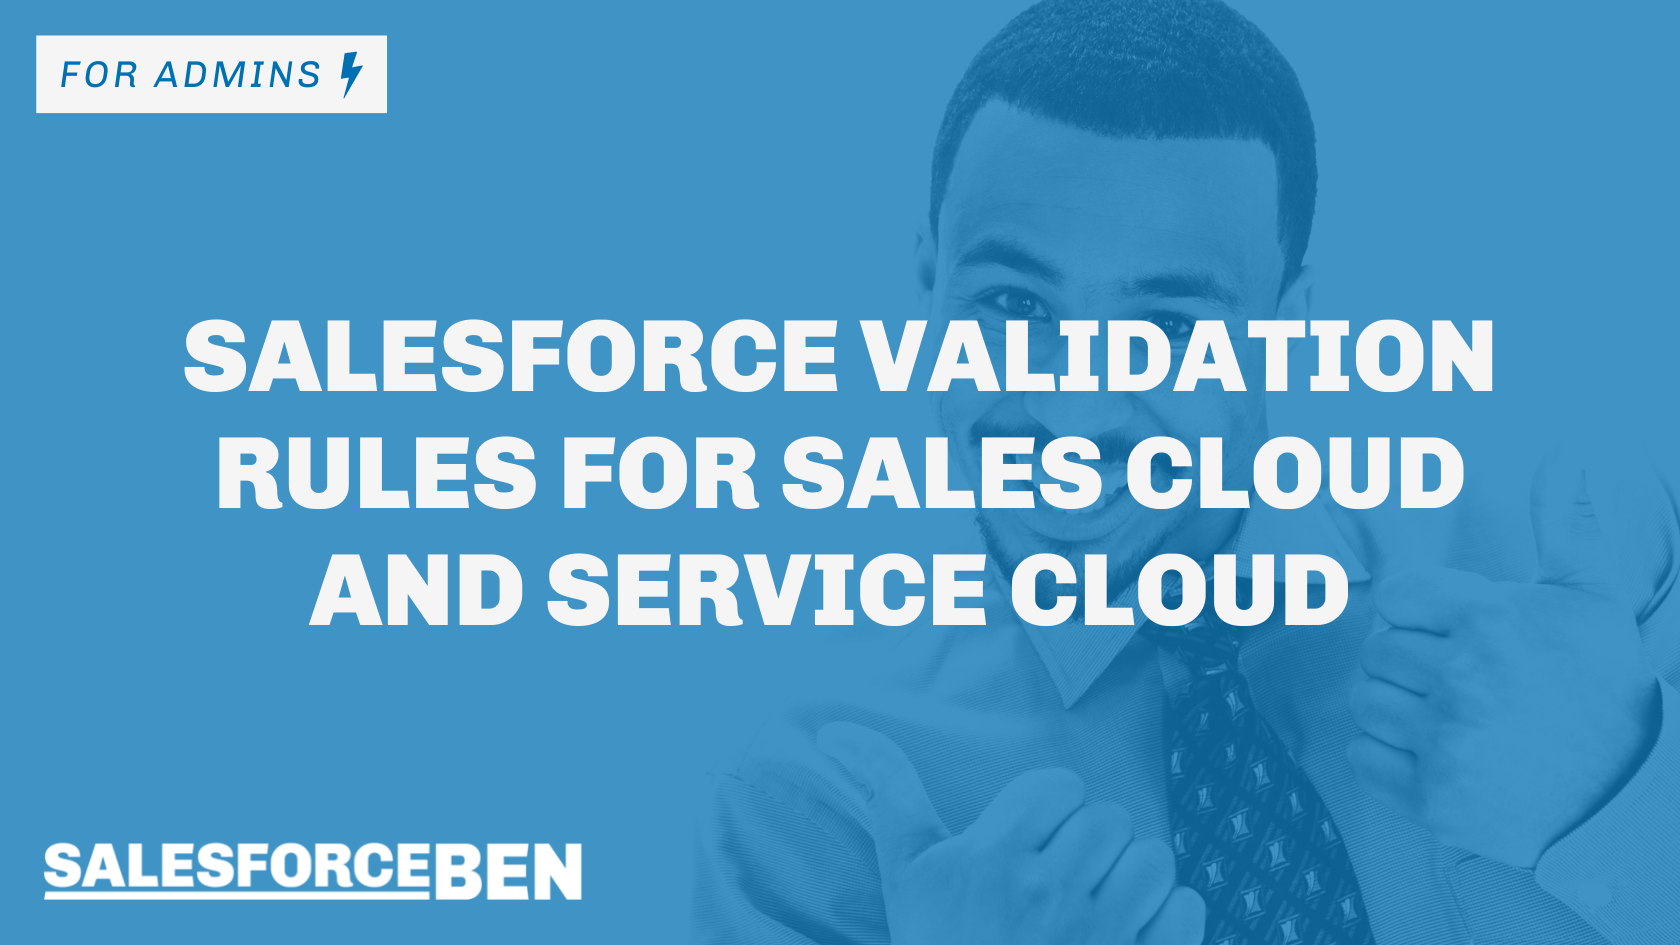 Salesforce Validation Rules for Sales Cloud and Service Cloud